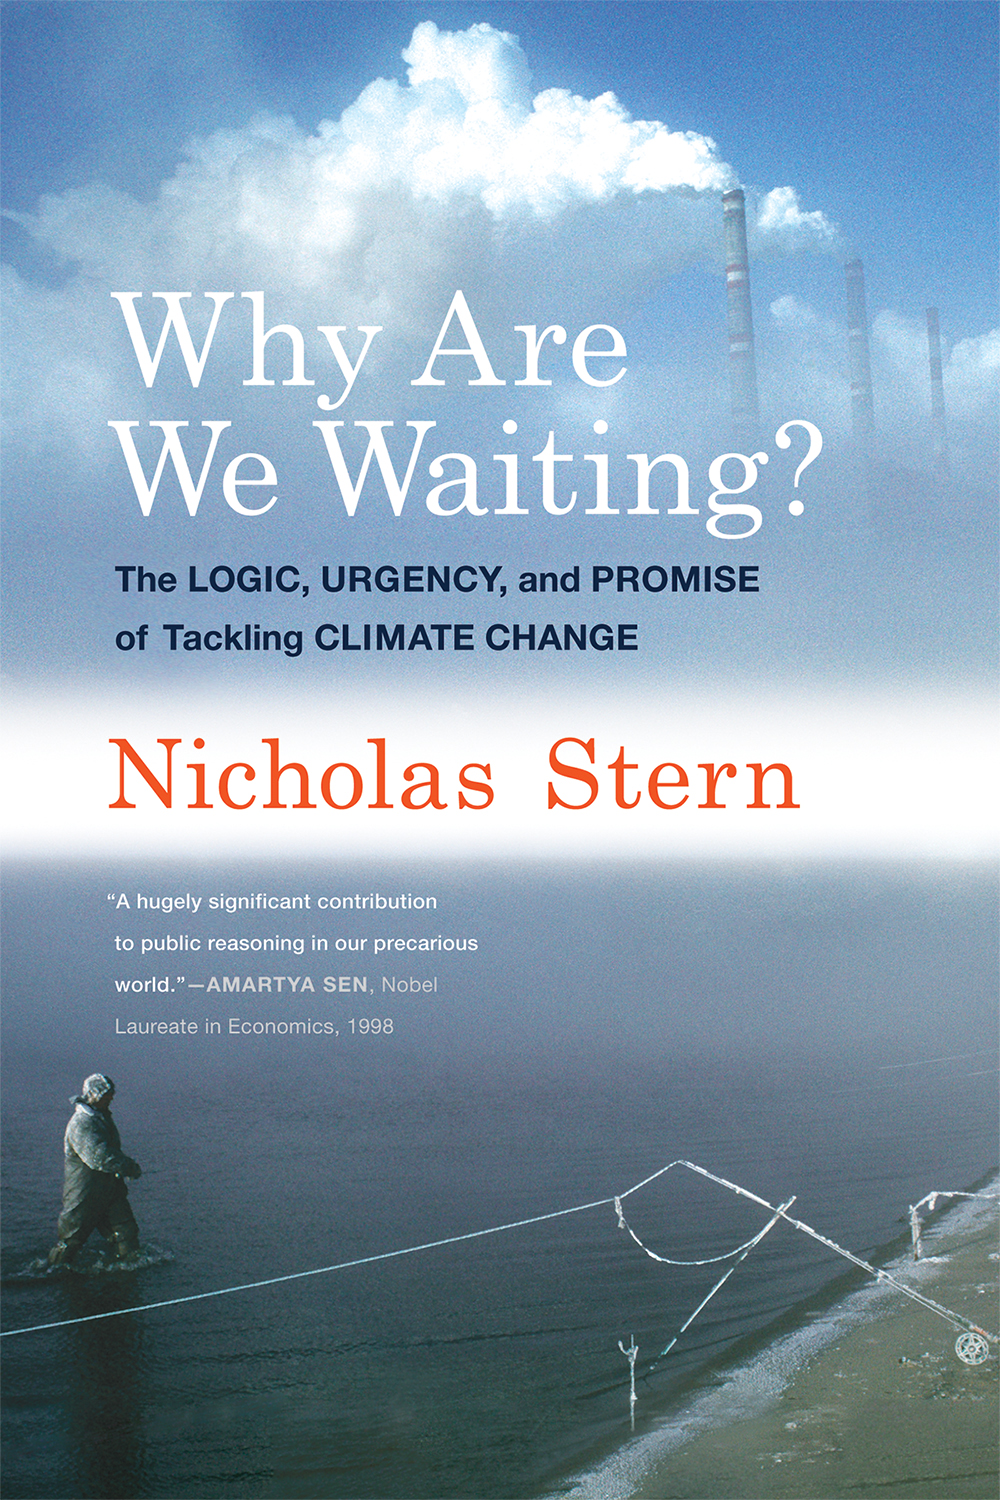 Why Are We Waiting? The Logic, Urgency, and Promise of Tackling Climate Change